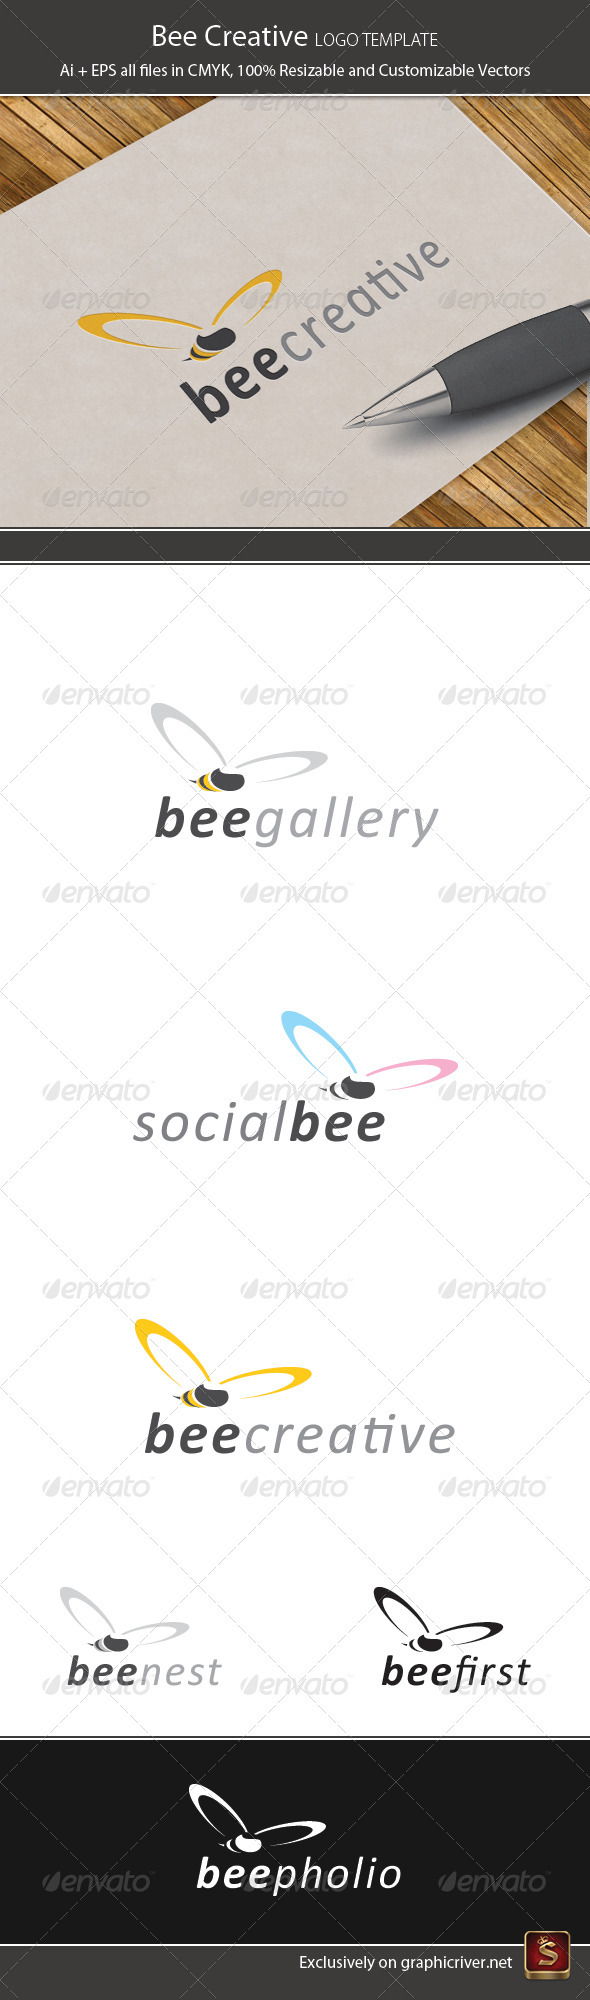 Bee Creative Logo Template - Animals Logo Templates